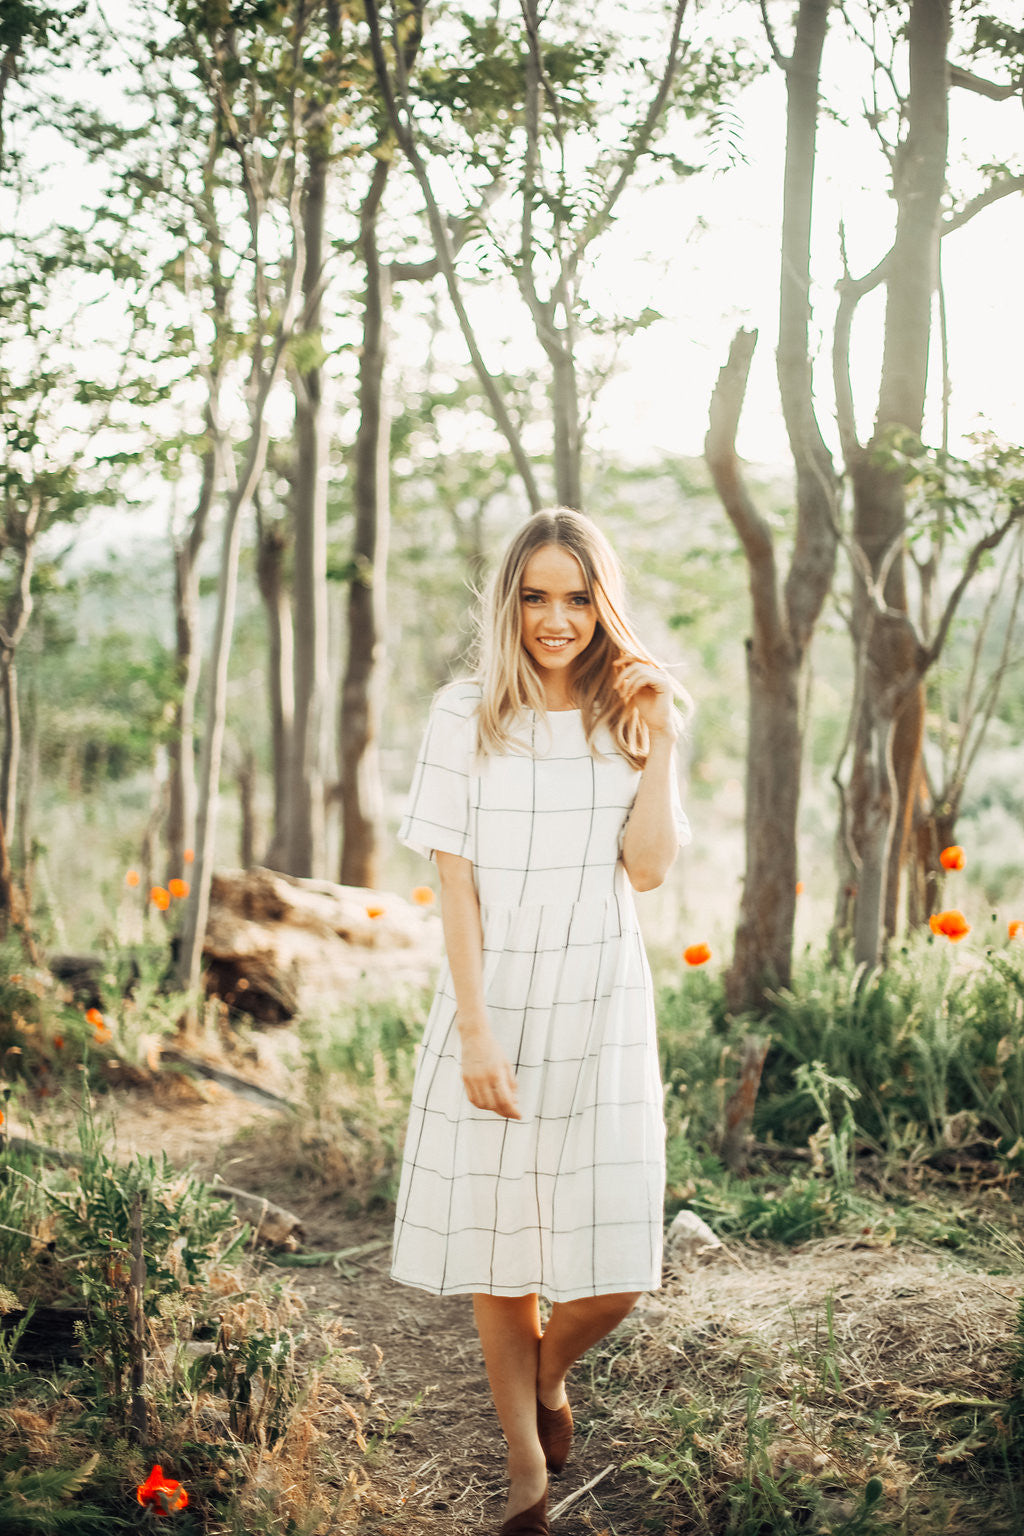 The Summer Grid Dress in White